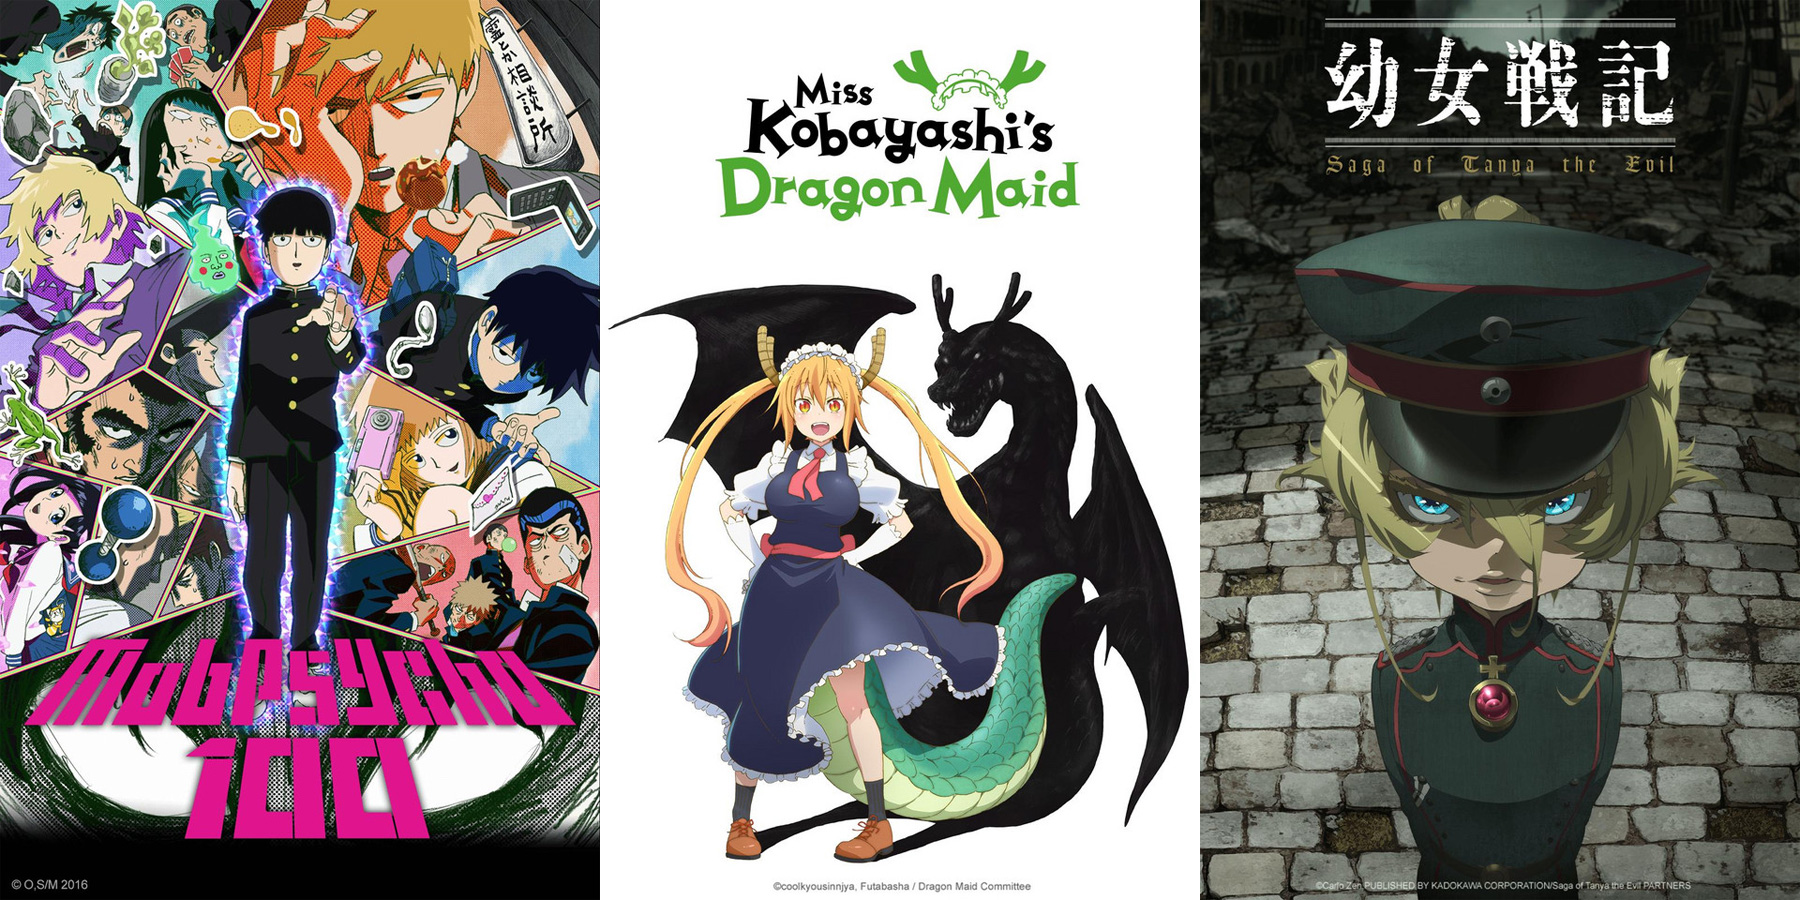 Mob Psycho 100, Miss Kobayashi's Dragon Maid und Saga of Tanya the Evi